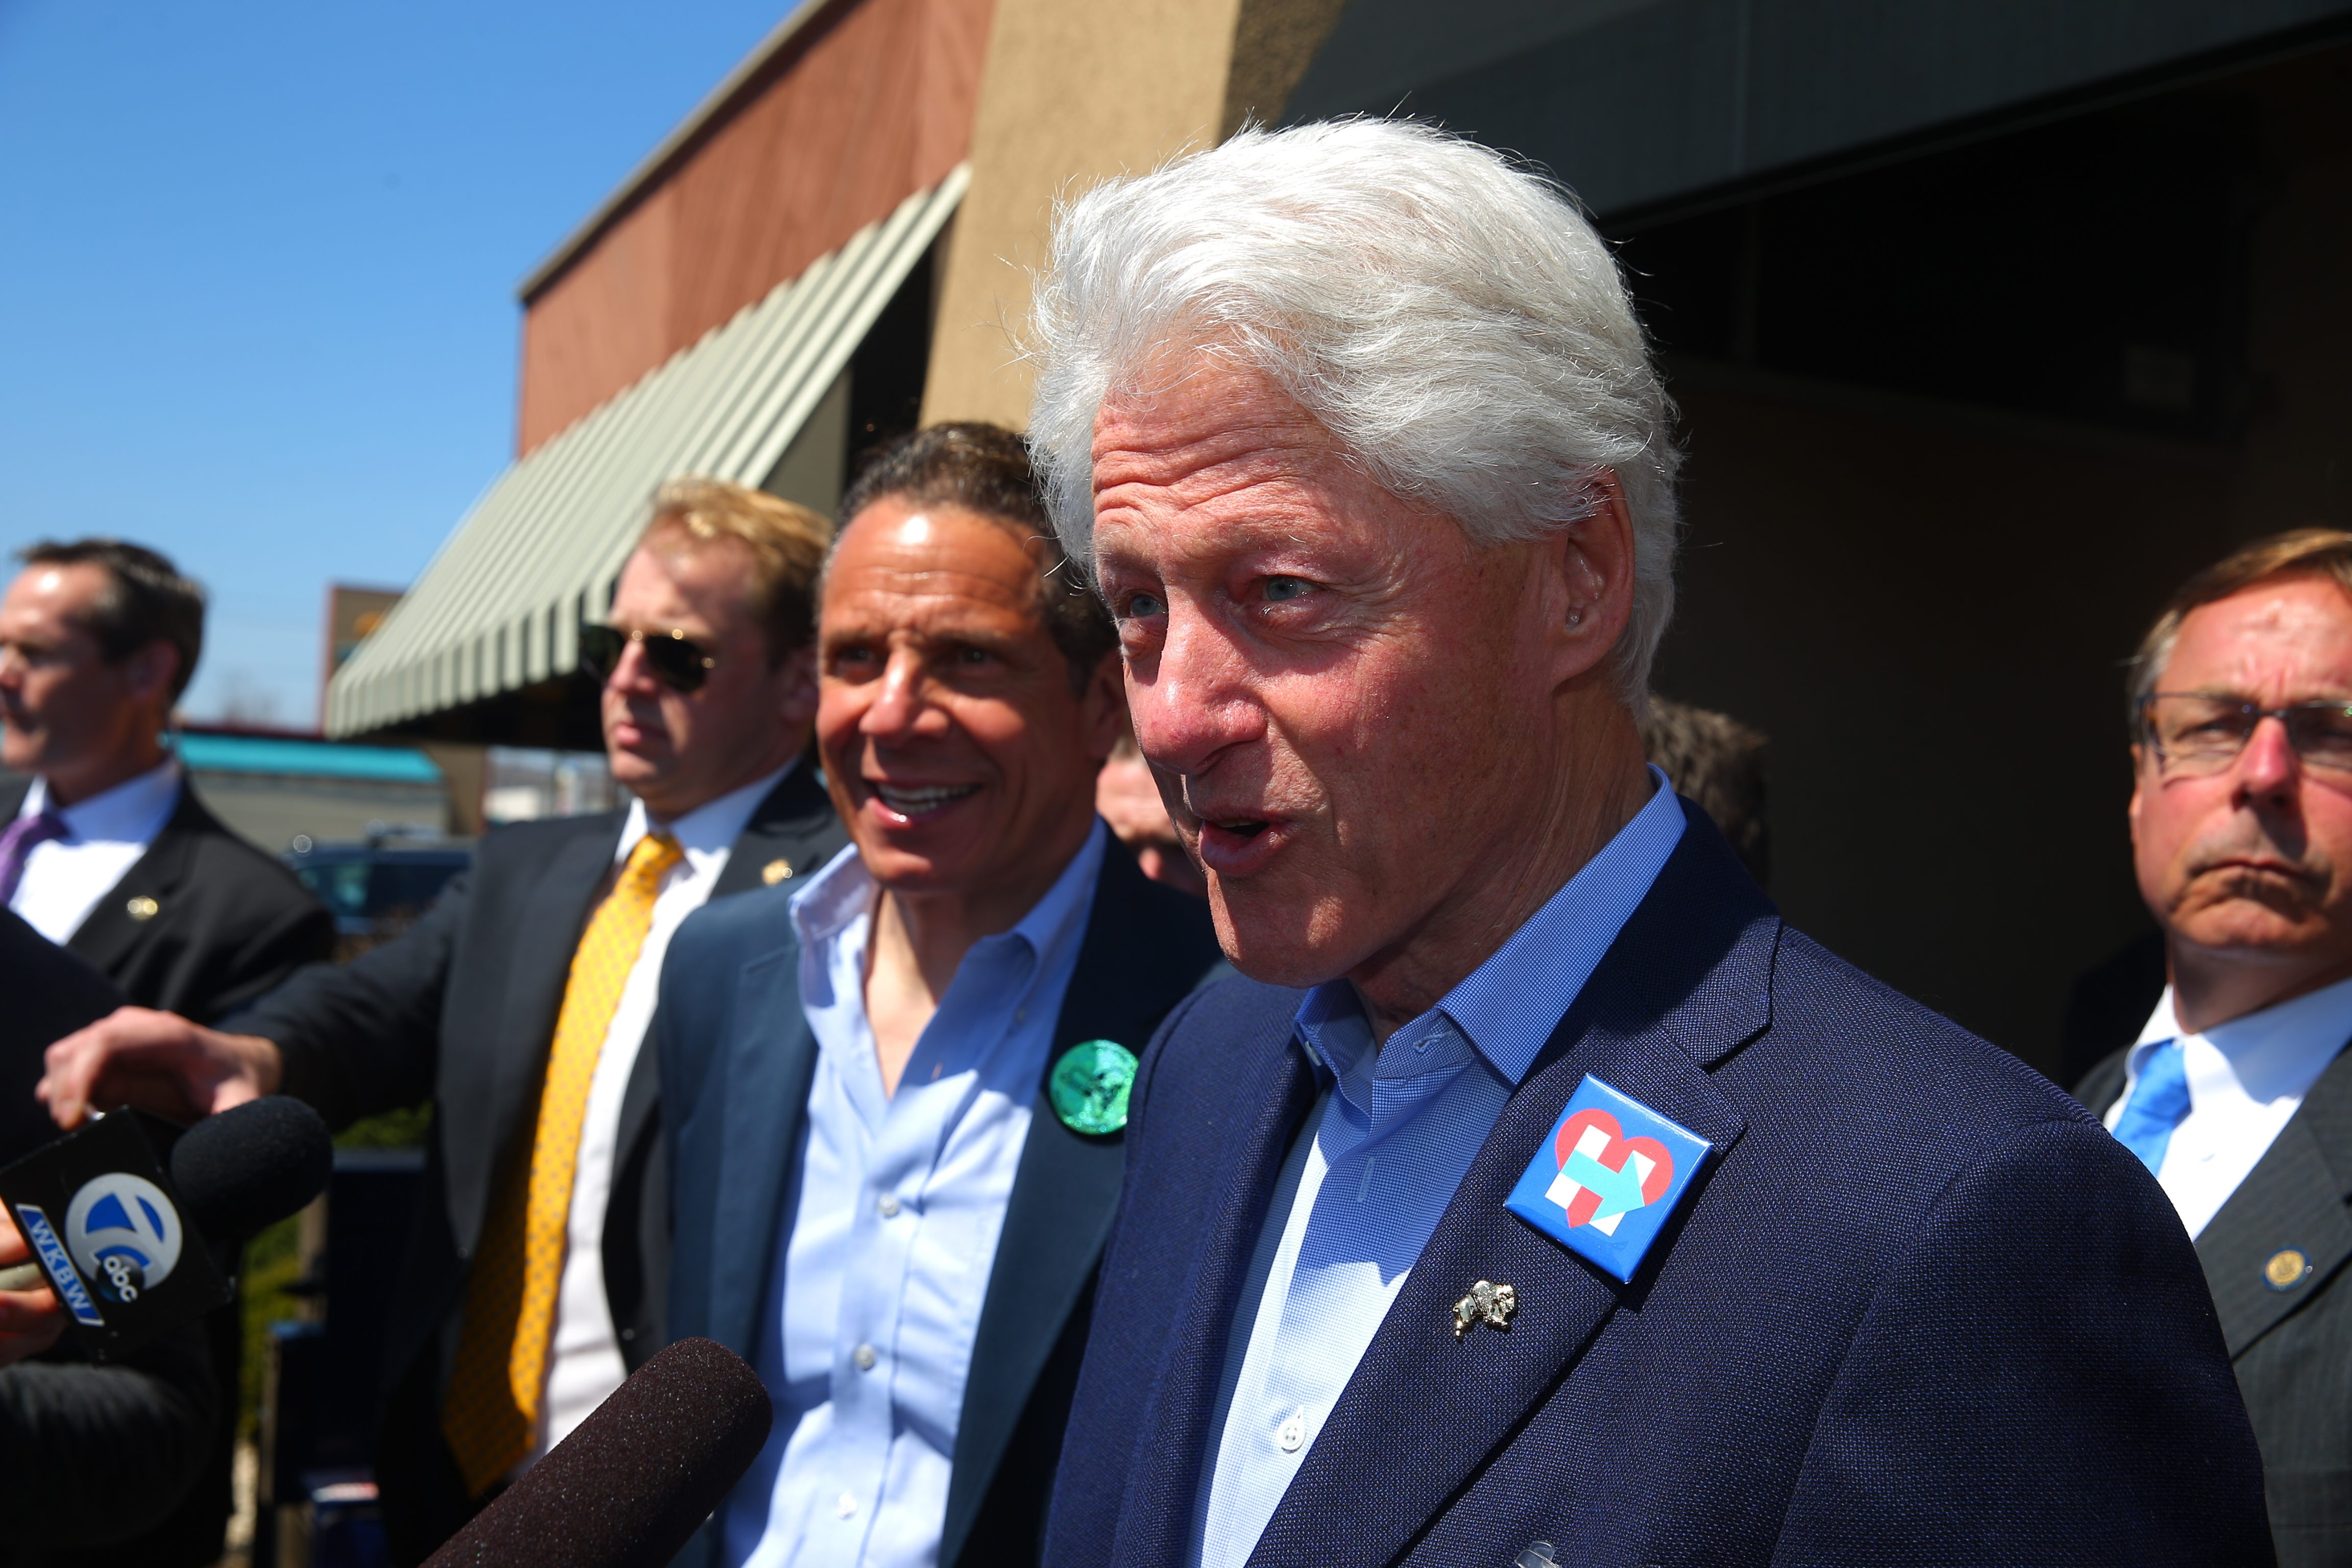 Former President Bill Clinton greeted lunchgoers at Alton's restaurant in Cheektowaga on Monday during a last-minute swing thru Western New York for his wife Hillary's campaign with Gov. Andrew Cuomo and a cadre of local politicians. (John Hickey/Buffalo News)